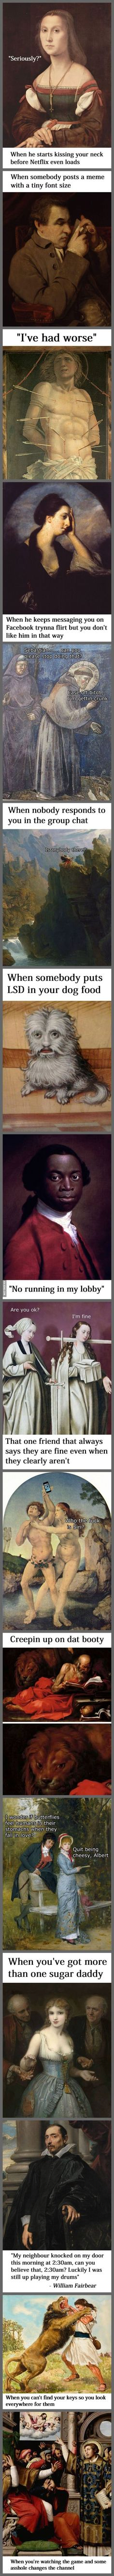 Classical Art Memes Latest (Part-11)